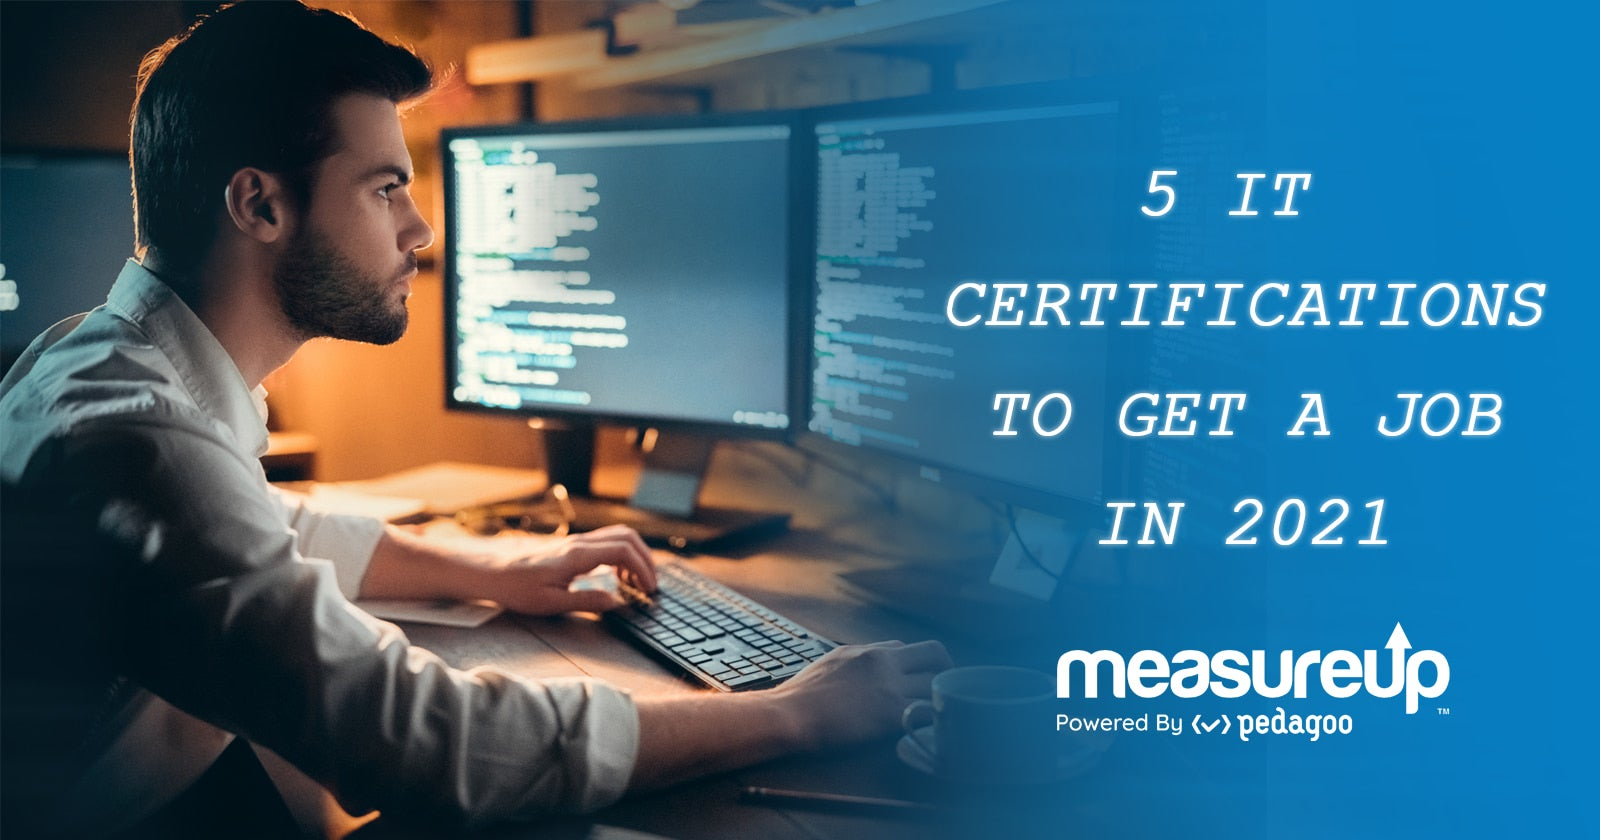 5 IT certifications to get a job in 2021